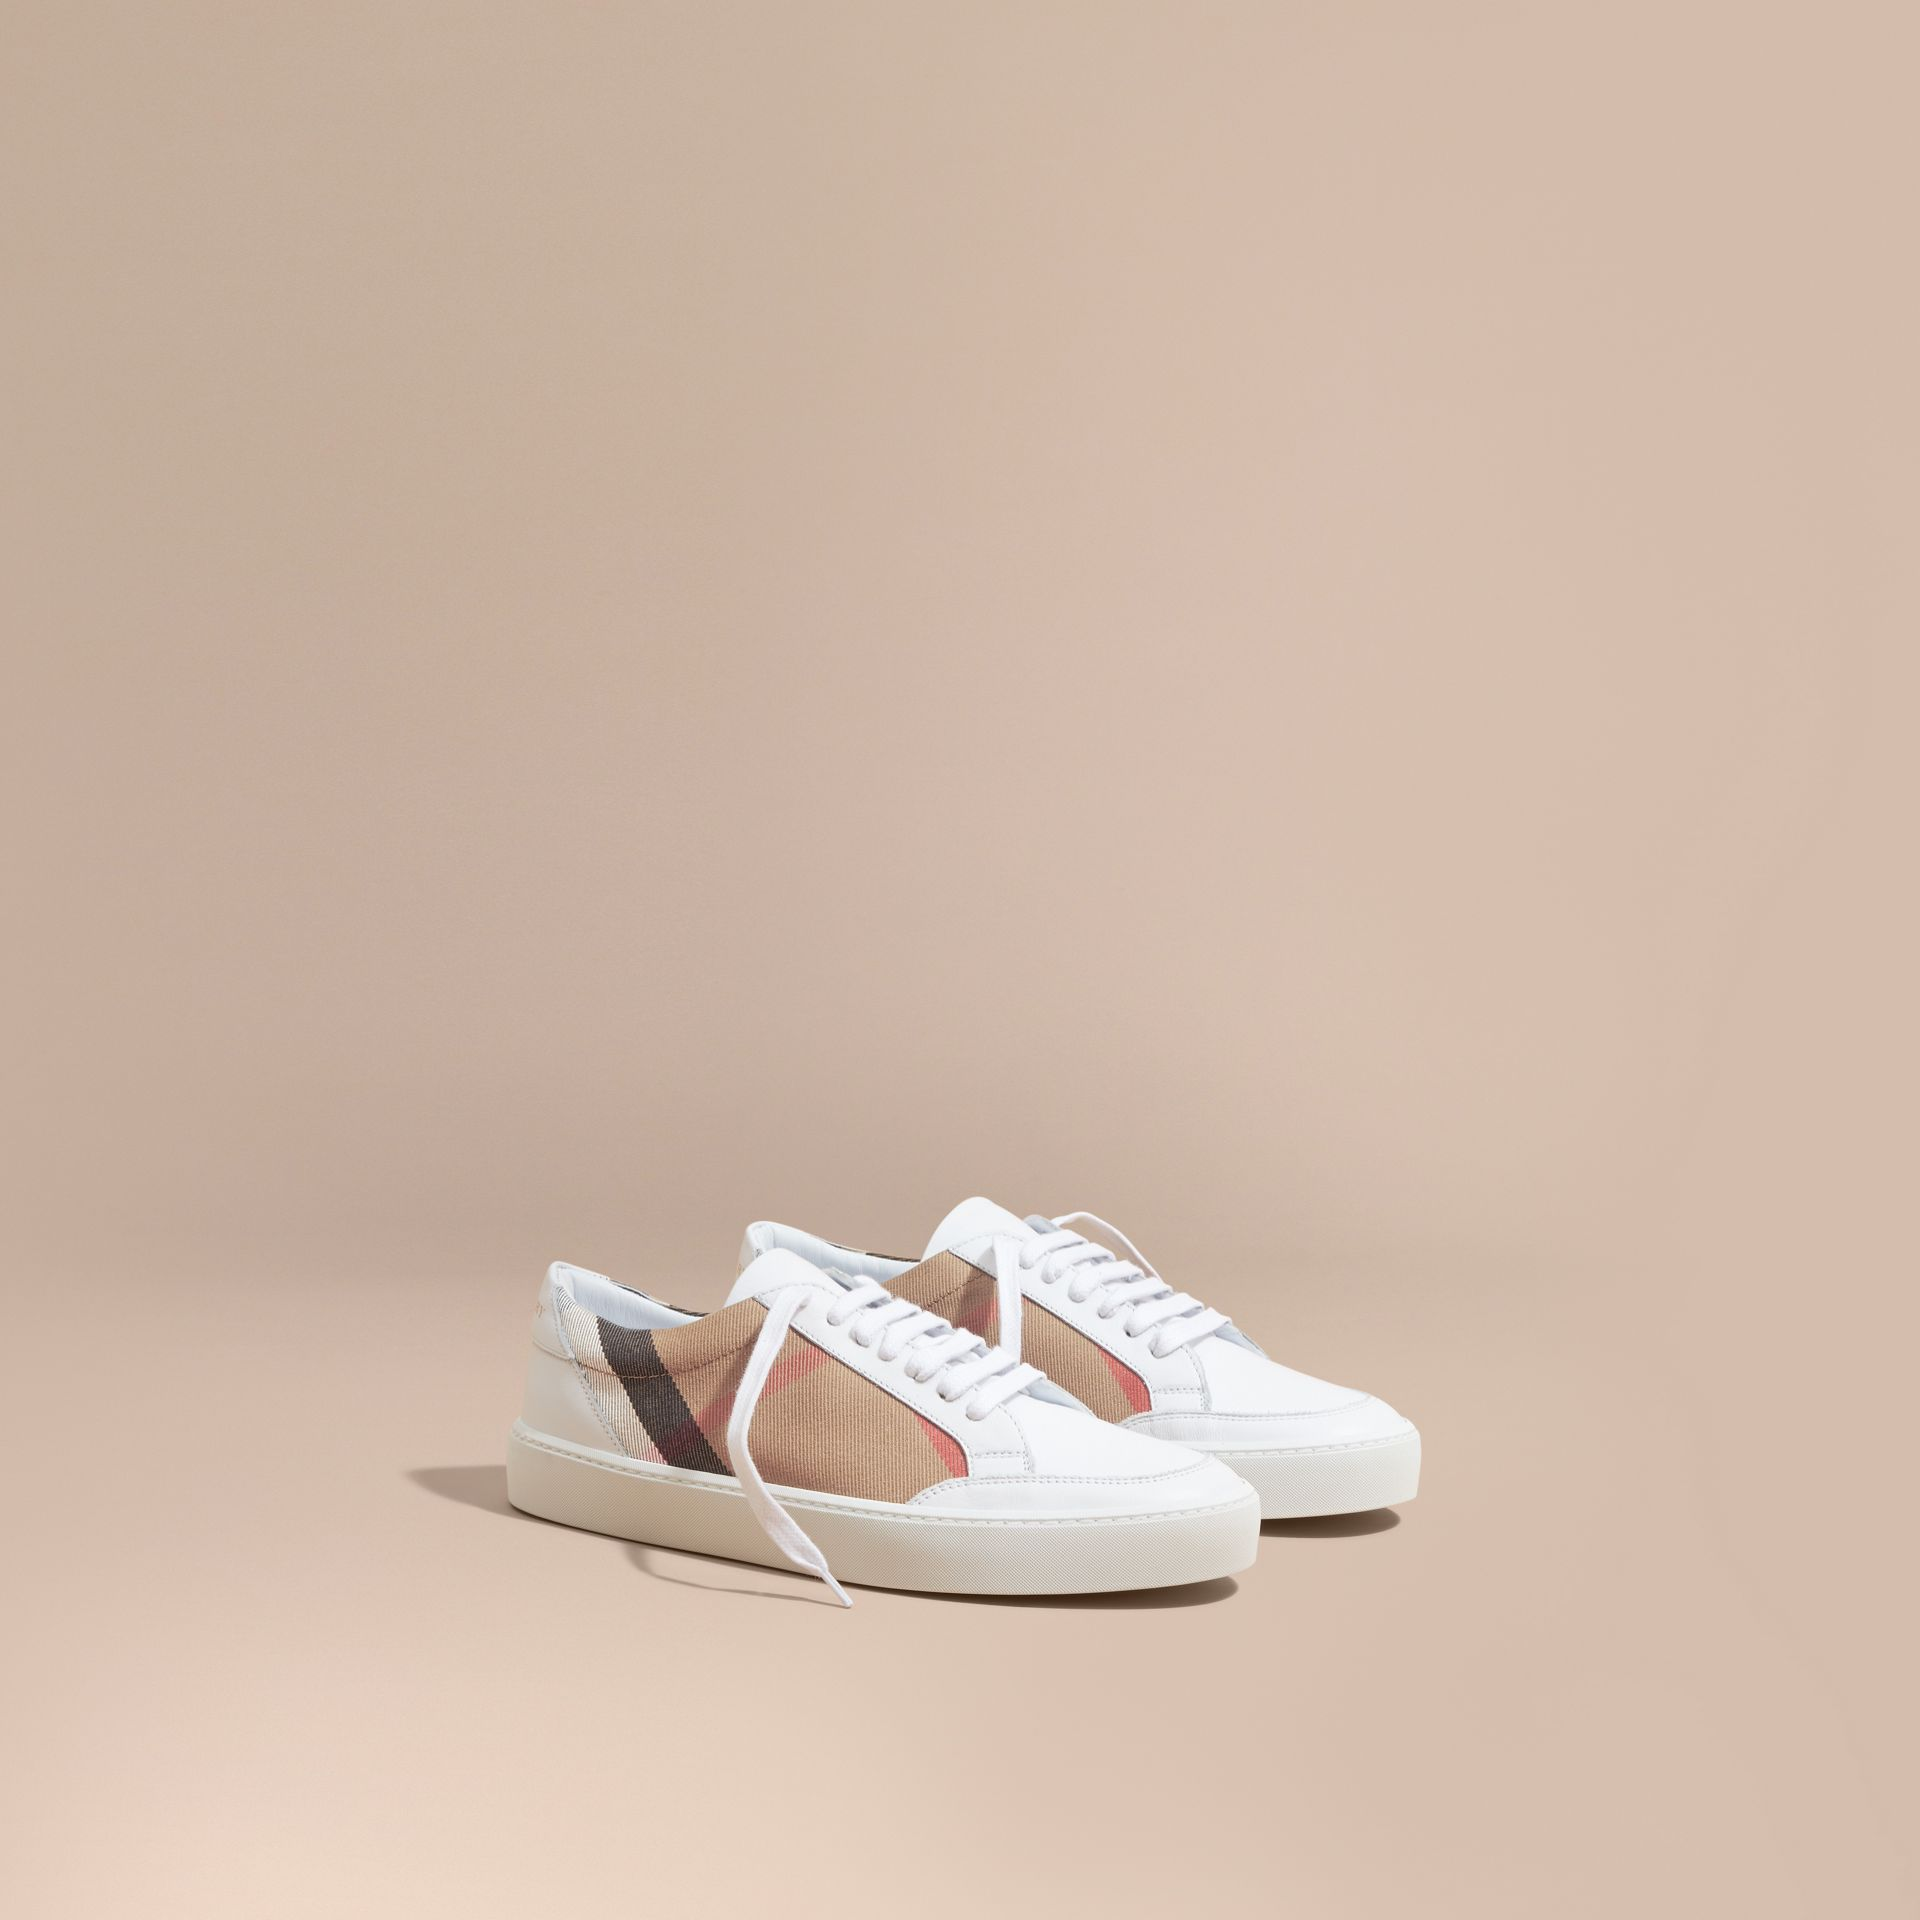 House check/ optic white Check Detail Leather Sneakers House Check/ Optic White - gallery image 1